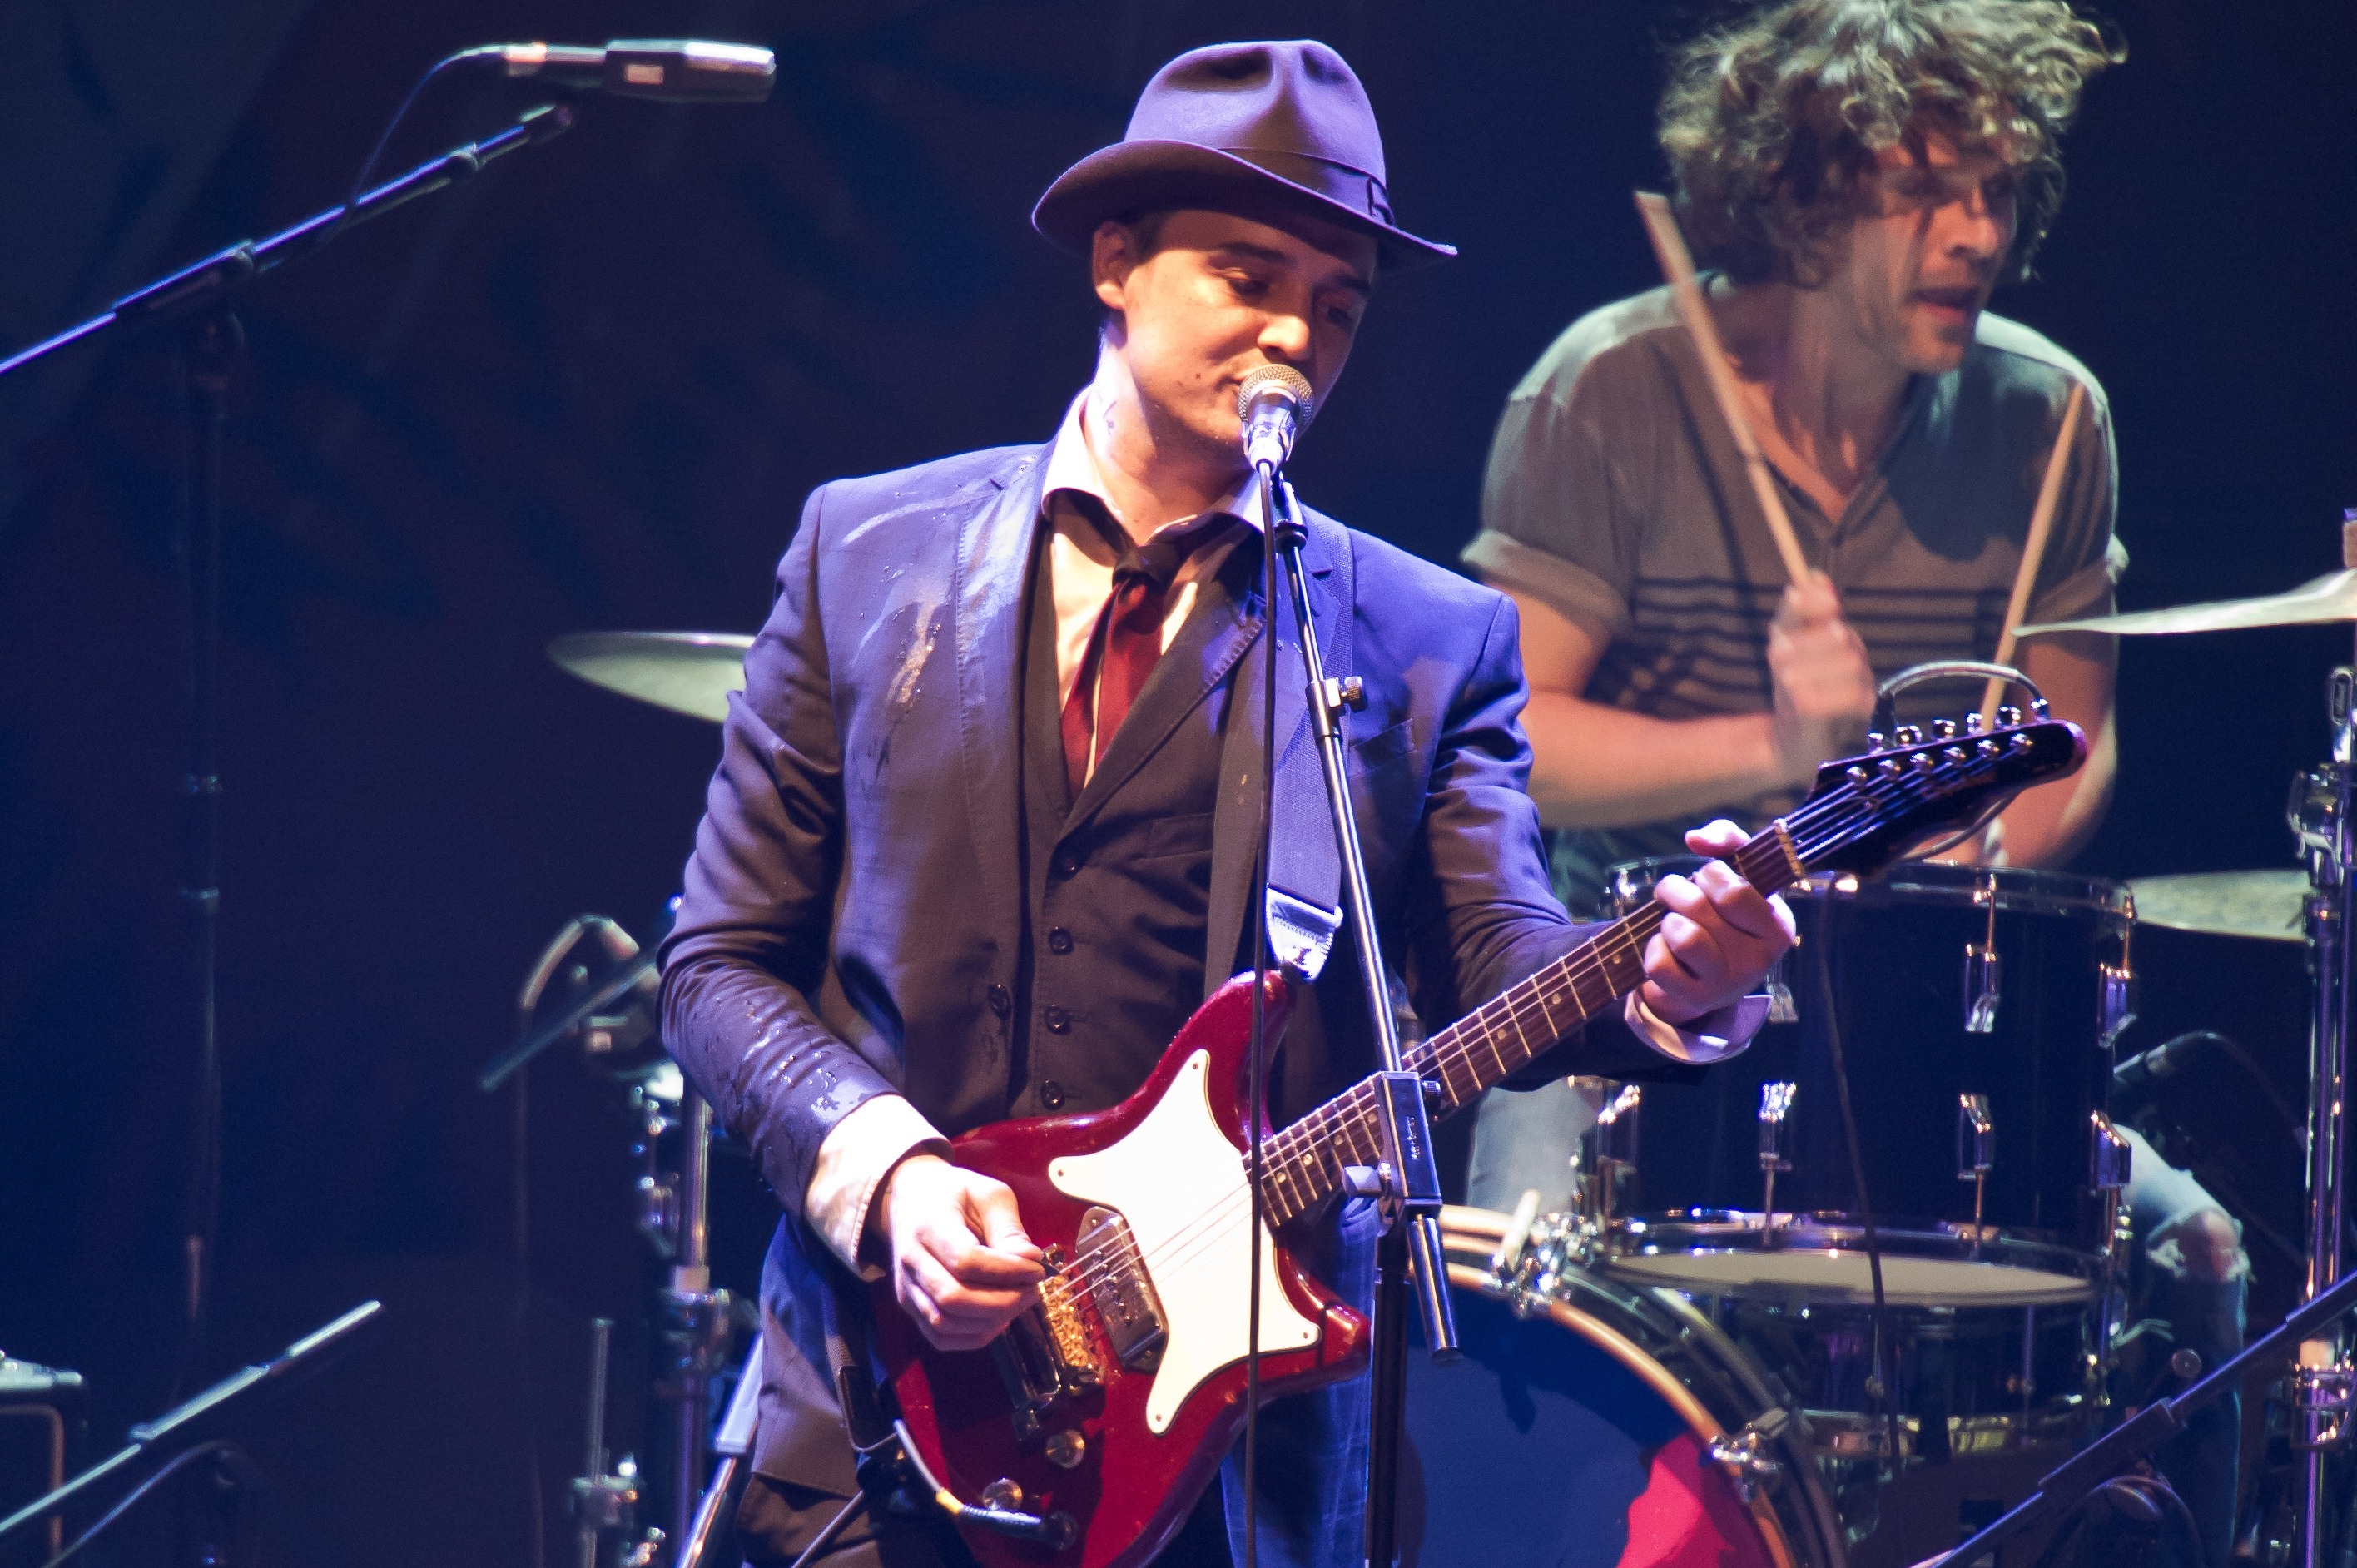 LONDON, UNITED KINGDOM - MARCH 10: Pete Doherty of Babyshambles performs on stage at The Roundhouse on March 10, 2014 in Lond